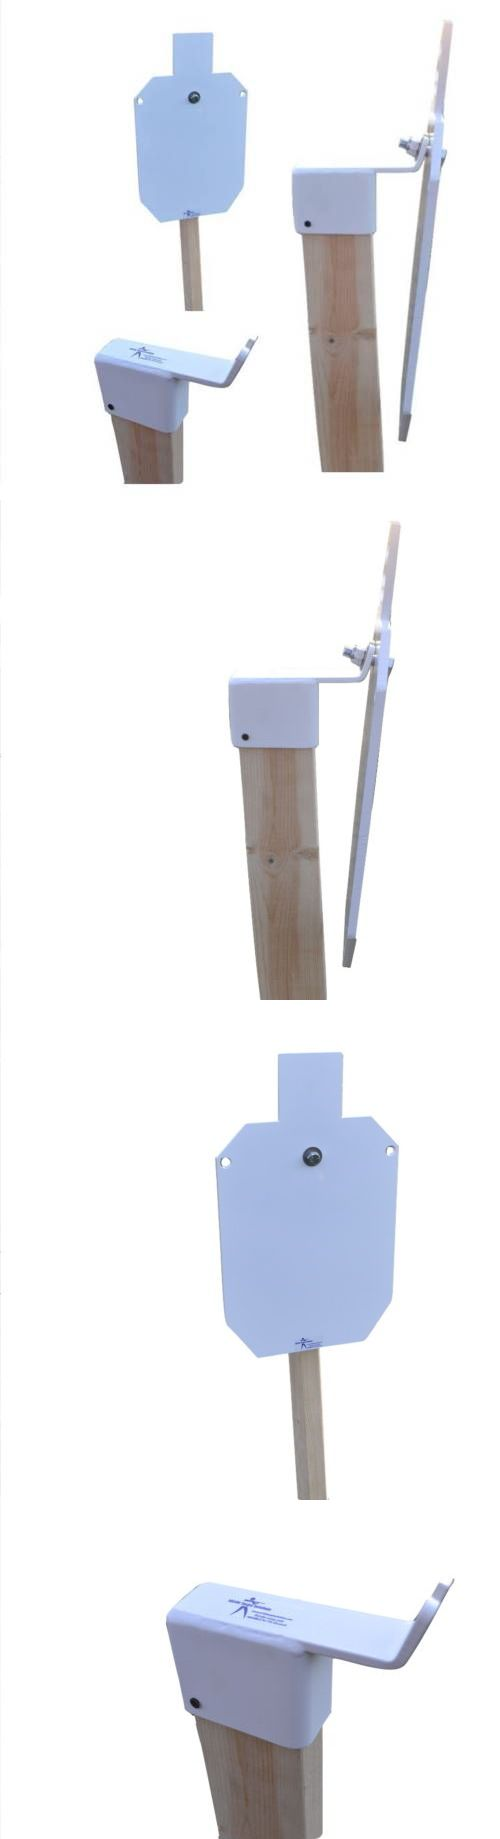 Targets 73978: Ar500 12X20 X 3/8 Steel Shooting Target With Stand Hanger Mount Kit Silhouette BUY IT NOW ONLY: $89.99